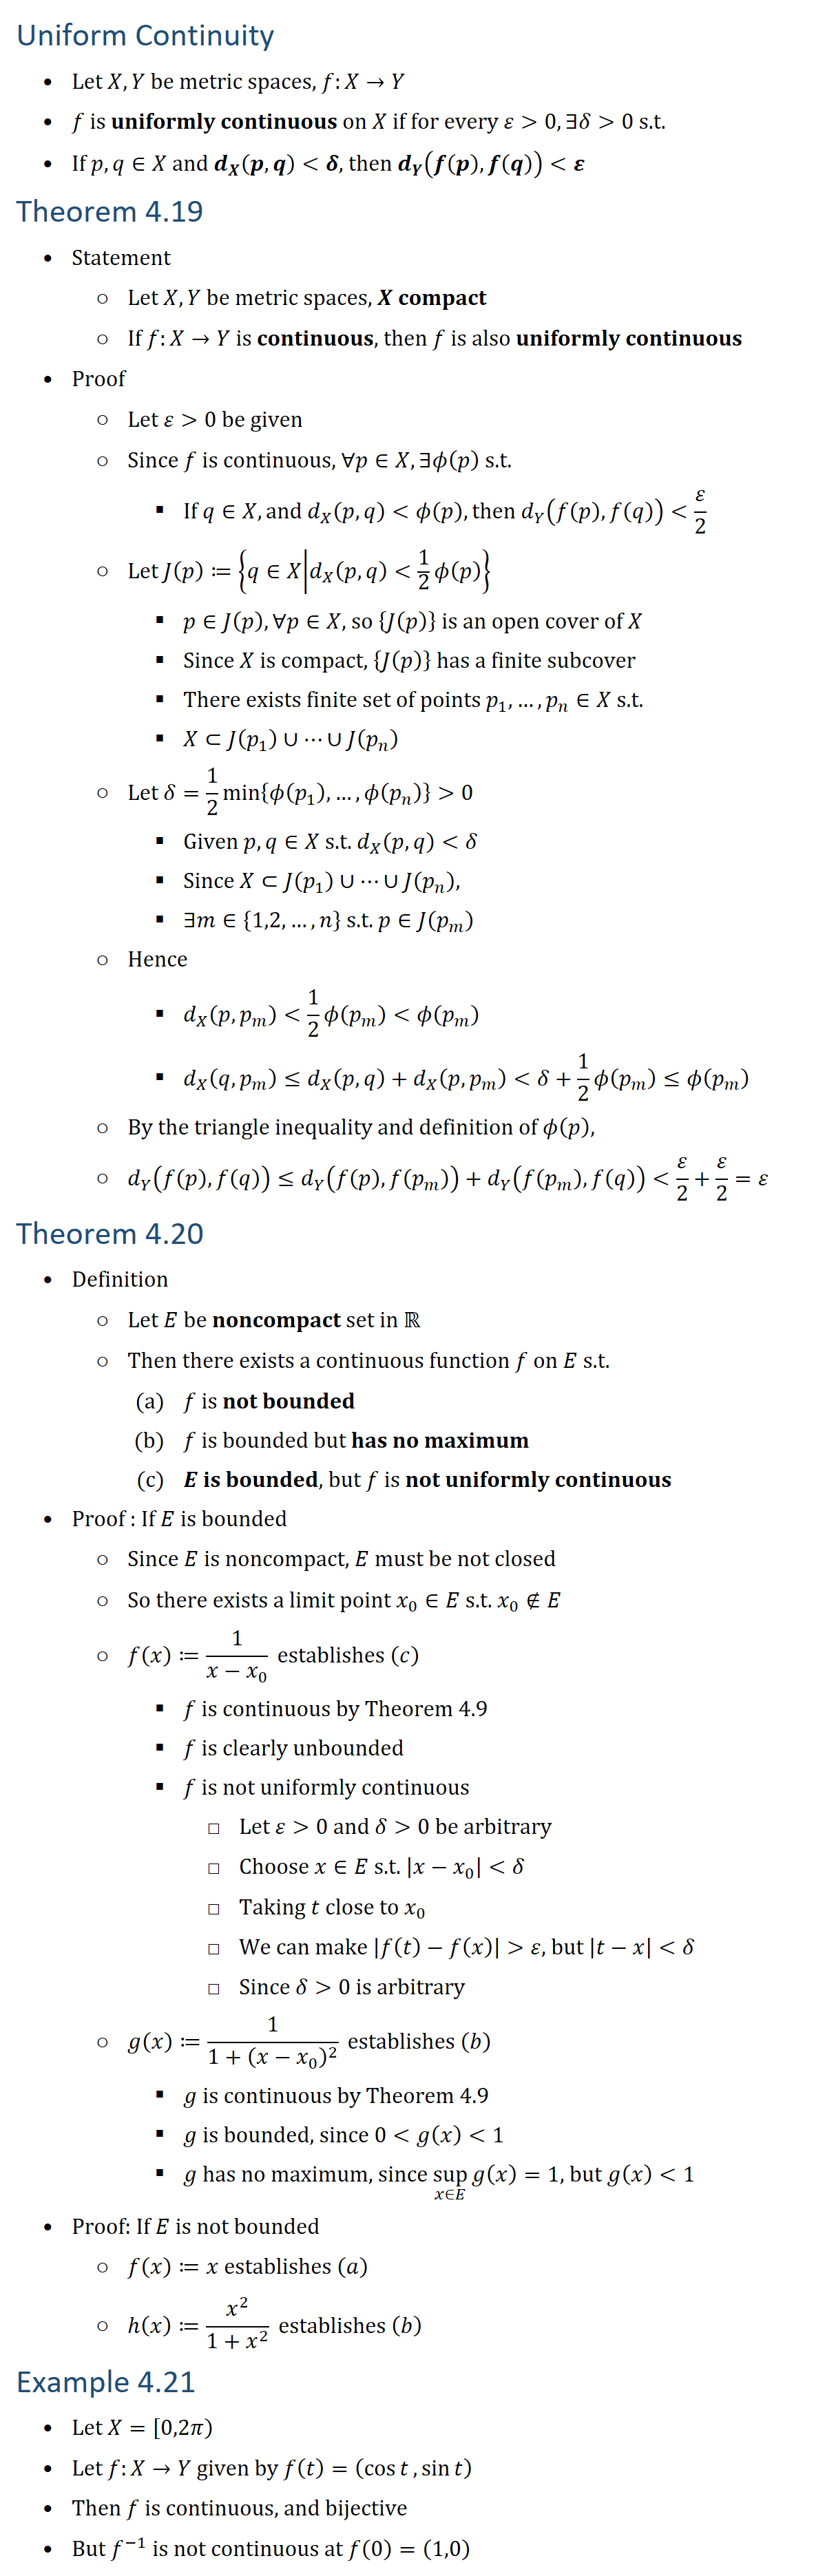 Uniform Continuity • Let X,Y be metric spaces, f:X→Y • f is uniformly continuous on X if for every ε 0, ∃δ 0 s.t. • If p,q∈X and d_X (p,q) δ, then d_Y (f(p),f(q)) ε Theorem 4.19 • Statement ○ Let X,Y be metric spaces, X compact ○ If f:X→Y is continuous, then f is also uniformly continuous • Proof ○ Let ε 0 be given ○ Since f is continuous, ∀p∈X, ∃ϕ(p) s.t. § If q∈X, and d_X (p,q) ϕ(p), then d_Y (f(p),f(q)) ε/2 ○ Let J(p)≔{q∈X│d_X (p,q) 1/2 ϕ(p) } § p∈J(p),∀p∈X, so {J(p)} is an open cover of X § Since X is compact, {J(p)} has a finite subcover § There exists finite set of points p_1,…,p_n∈X s.t. § X⊂J(p_1 )∪…∪J(p_n ) ○ Let δ=1/2 min⁡{ϕ(p_1 ),…,ϕ(p_n )} 0 § Given p,q∈X s.t. d_X (p,q) δ § Since X⊂J(p_1 )∪…∪J(p_n ), § ∃m∈{1,2,…,n} s.t. p∈J(p_m ) ○ Hence § d_X (p,p_m ) 1/2 ϕ(p_m ) ϕ(p_m ) § d_X (q,p_m )≤d_X (p,q)+d_X (p,p_m ) δ+1/2 ϕ(p_m )≤ϕ(p_m ) ○ By the triangle inequality and definition of ϕ(p), ○ d_Y (f(p),f(q))≤d_Y (f(p),f(p_m ))+d_Y (f(p_m ),f(q)) ε/2+ε/2=ε Theorem 4.20 • Definition ○ Let E be noncompact set in R ○ Then there exists a continuous function f on E s.t. (a) f is not bounded (b) f is bounded but has no maximum (c) E is bounded, but f is not uniformly continuous • Proof : If E is bounded ○ Since E is noncompact, E must be not closed ○ So there exists a limit point x_0∈E s.t. x_0∉E ○ f(x)≔1/(x−x_0 ) establishes (c) § f is continuous by Theorem 4.9 § f is clearly unbounded § f is not uniformly continuous □ Let ε 0 and δ 0 be arbitrary □ Choose x∈E s.t. |x−x_0 | δ □ Taking t close to x_0 □ We can make |f(t)−f(x)| ε, but |t−x| δ □ Since δ 0 is arbitrary ○ g(x)≔1/(1+(x−x_0 )^2 ) establishes (b) § g is continuous by Theorem 4.9 § g is bounded, since 0 g(x) 1 § g has no maximum, since sup┬(x∈E)⁡g(x)=1, but g(x) 1 • Proof: If E is not bounded ○ f(x)≔x establishes (a) ○ h(x)≔x^2/(1+x^2 ) establishes (b) Example 4.21 • Let X=[0,2π) • Let f:X→Y given by f(t)=(cos⁡t,sin⁡t ) • Then f is continuous, and bijective • But f^(−1) is not continuous at f(0)=(1,0)